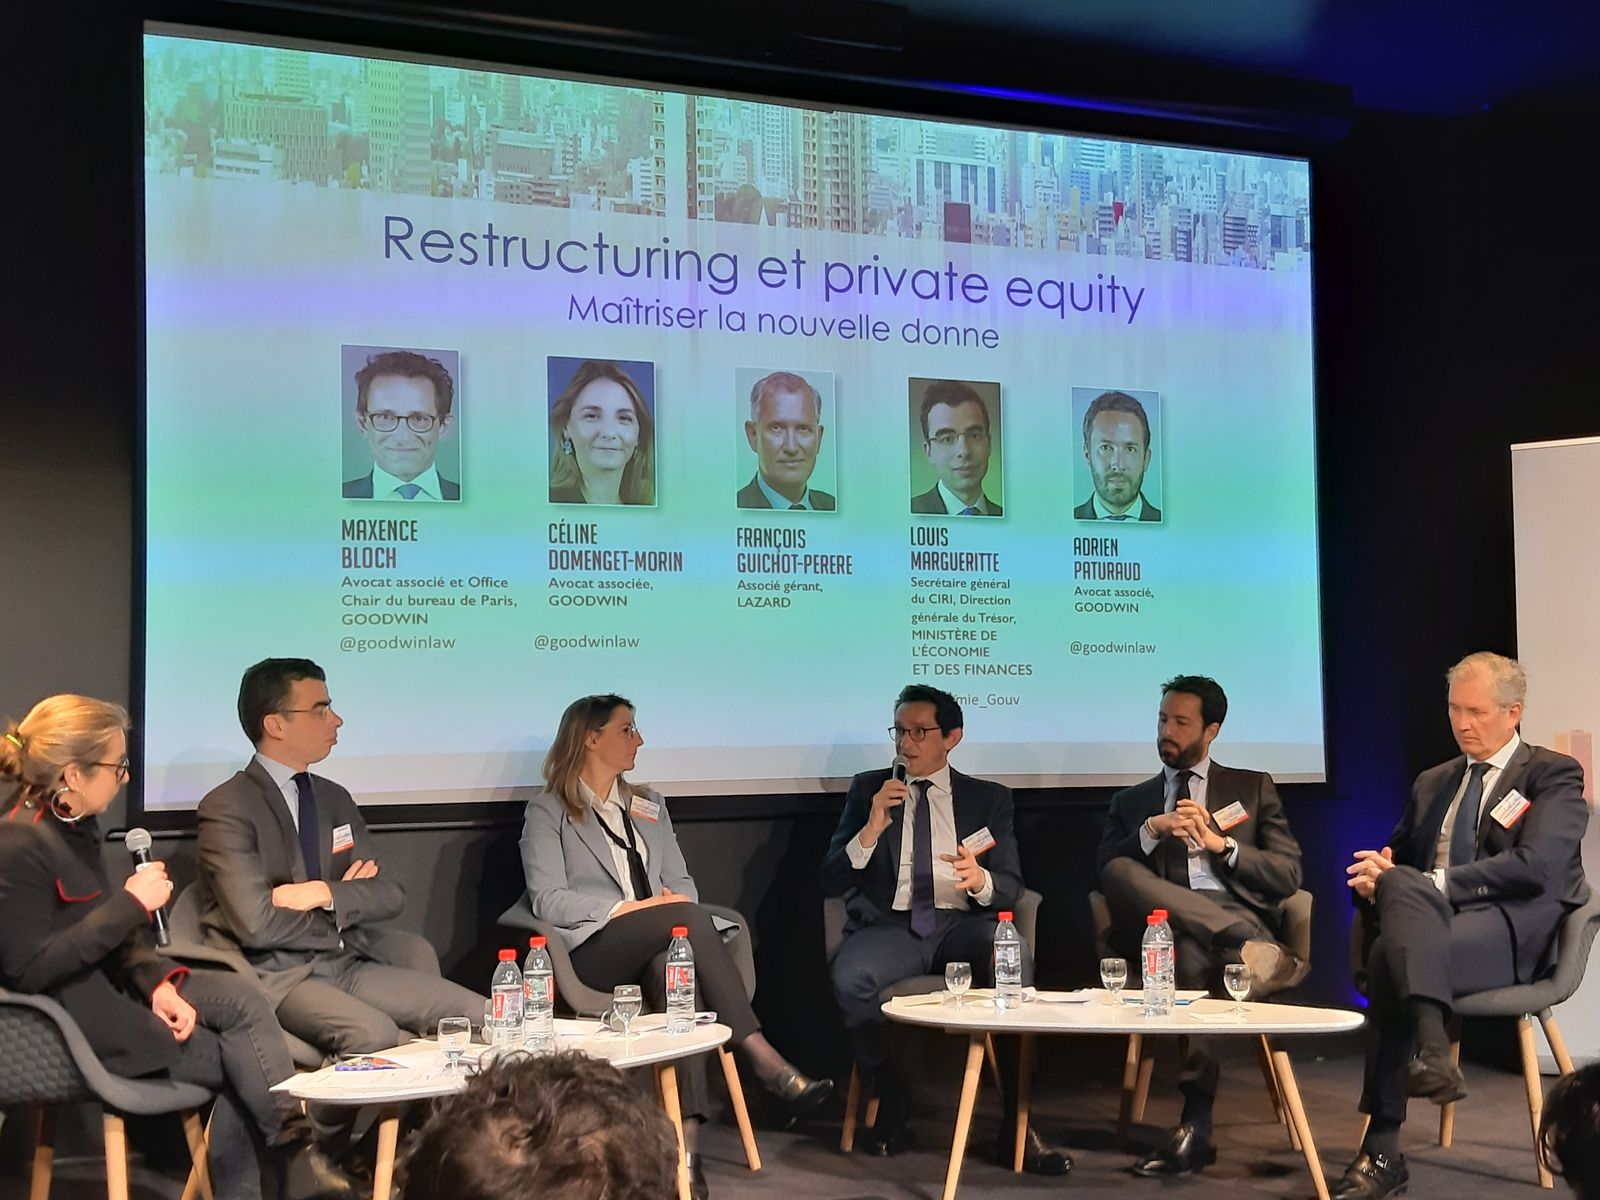 26 FEV : RESTRUCTURATION ET PRIVATE EQUITY : NOUVELLE DIRECTIVE EUROPEENNE